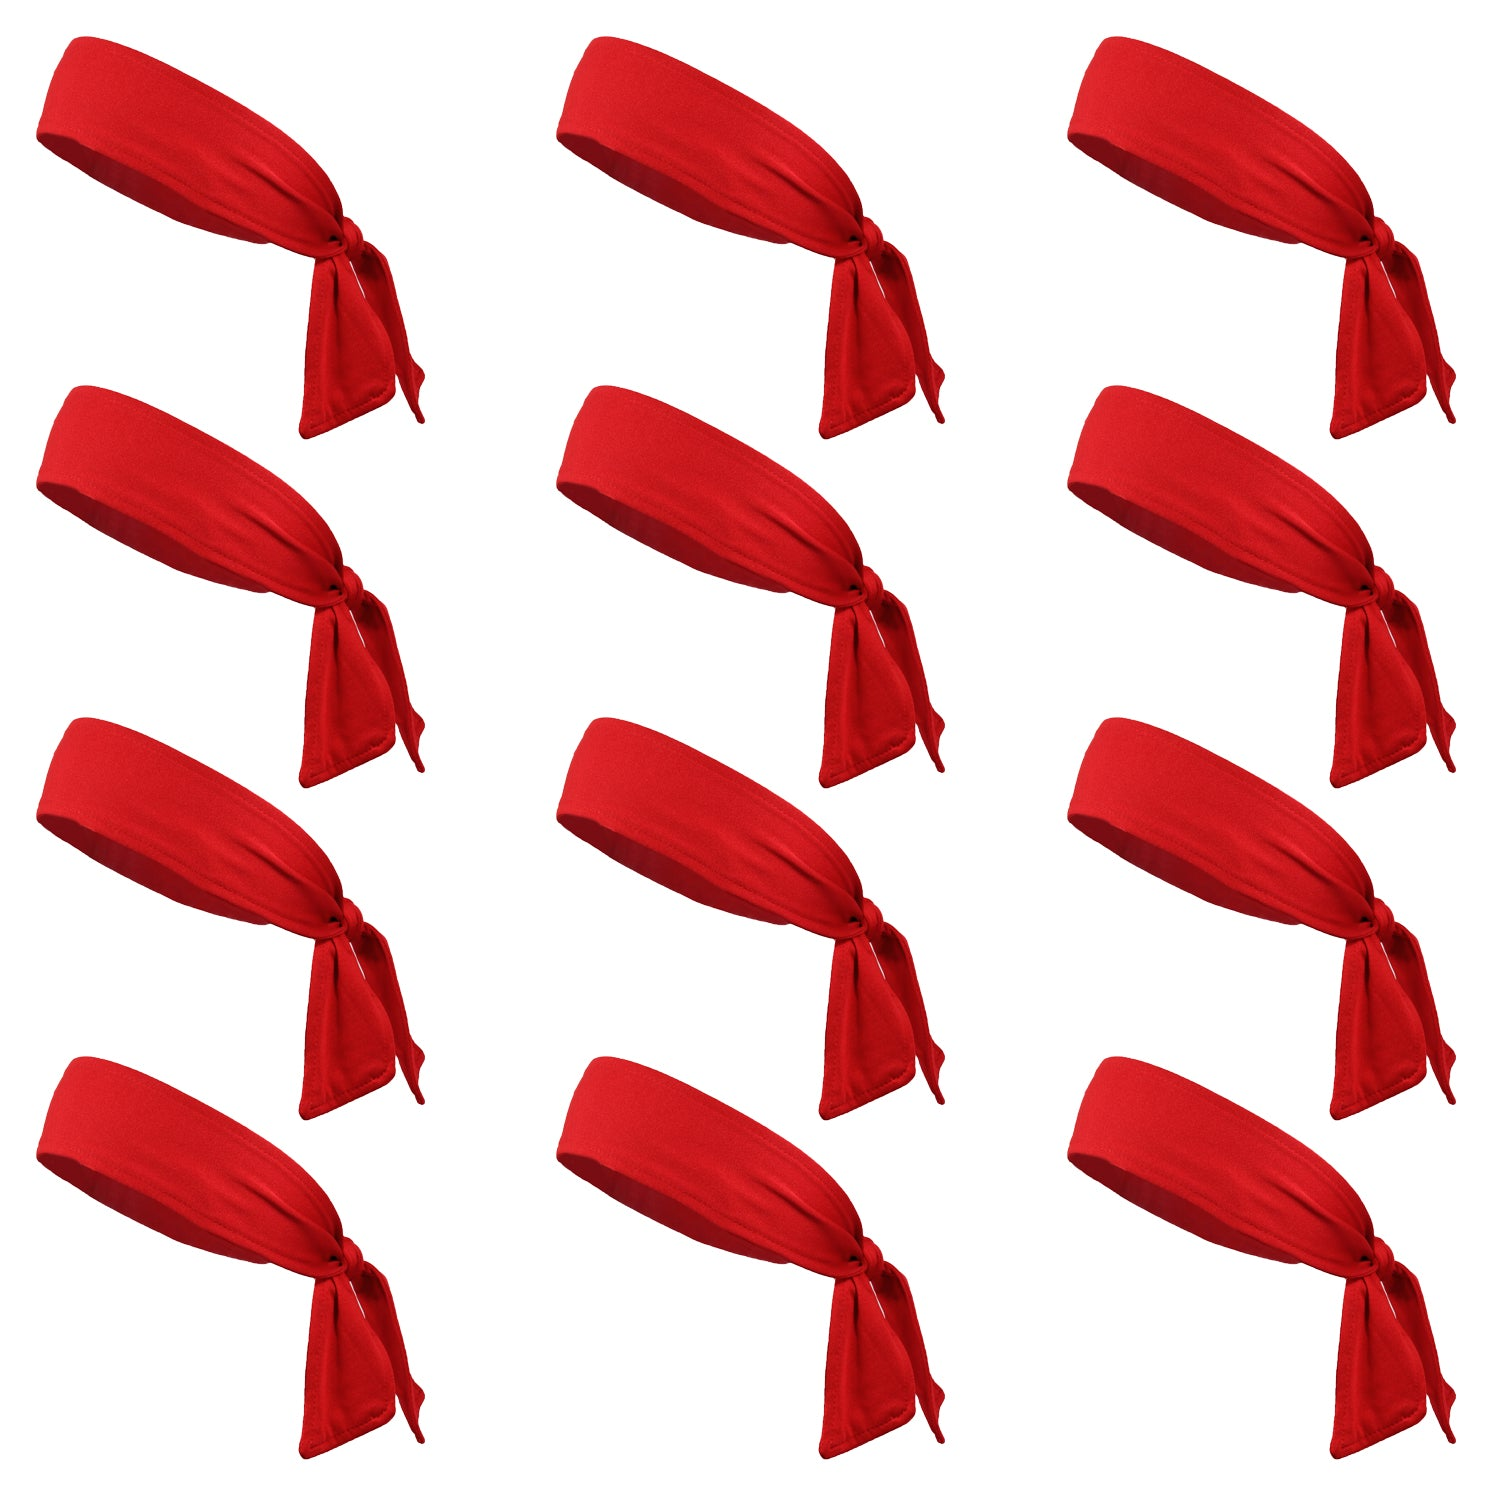 Lot of 12 High Quality Red Cotton Headbands